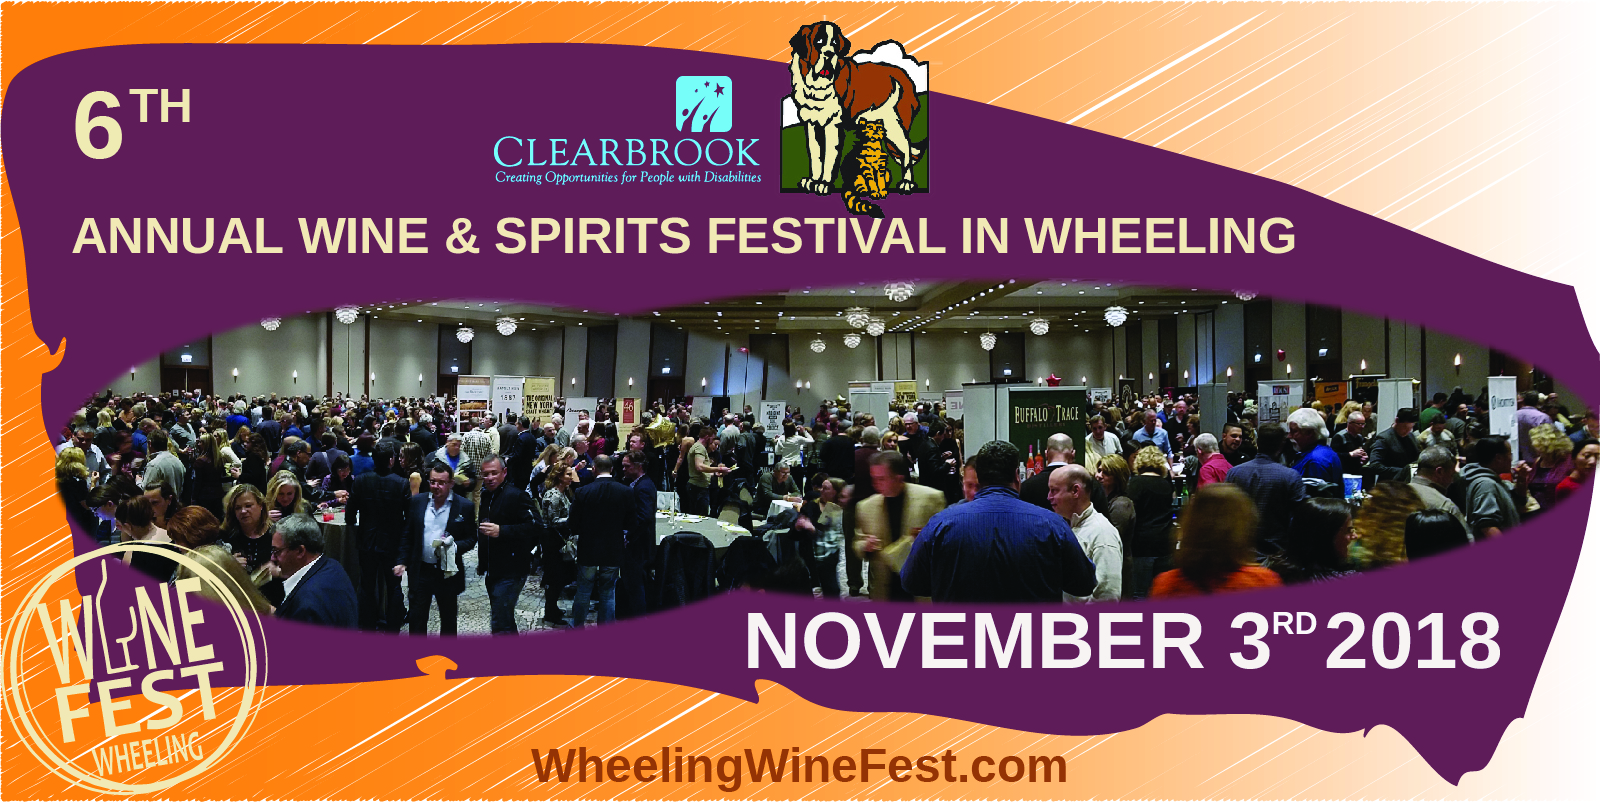 Wheeling Wine & Spirits Festival